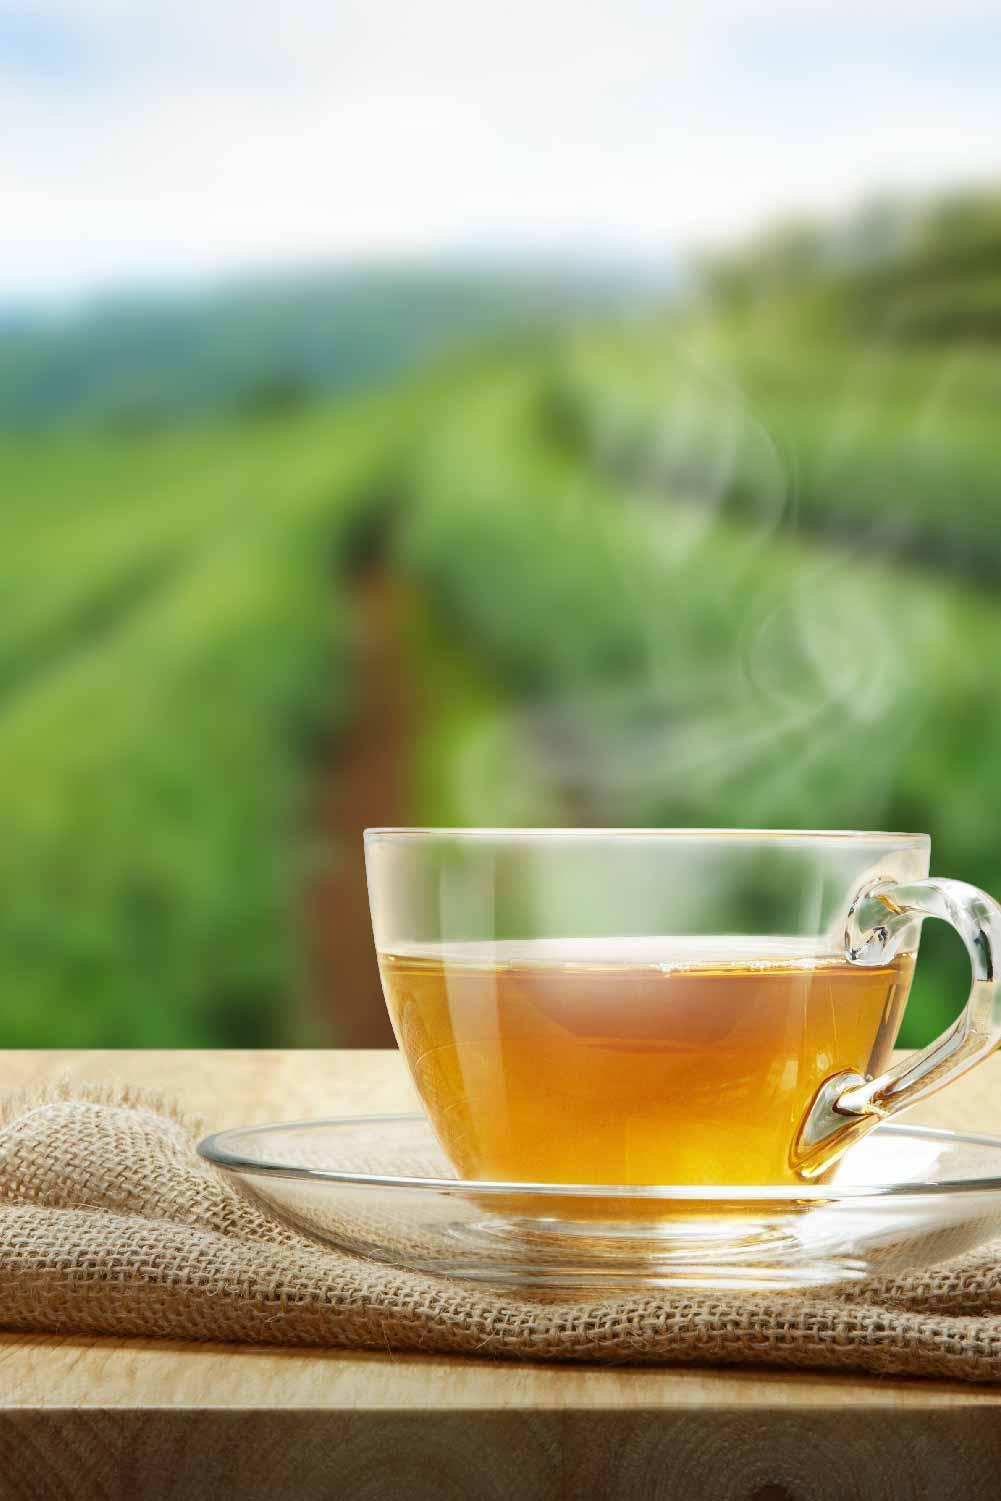 Sip on nature's goodness with our range of Organic Green Tea, grown in the Nilgiris at over 8000 ft. above sea level